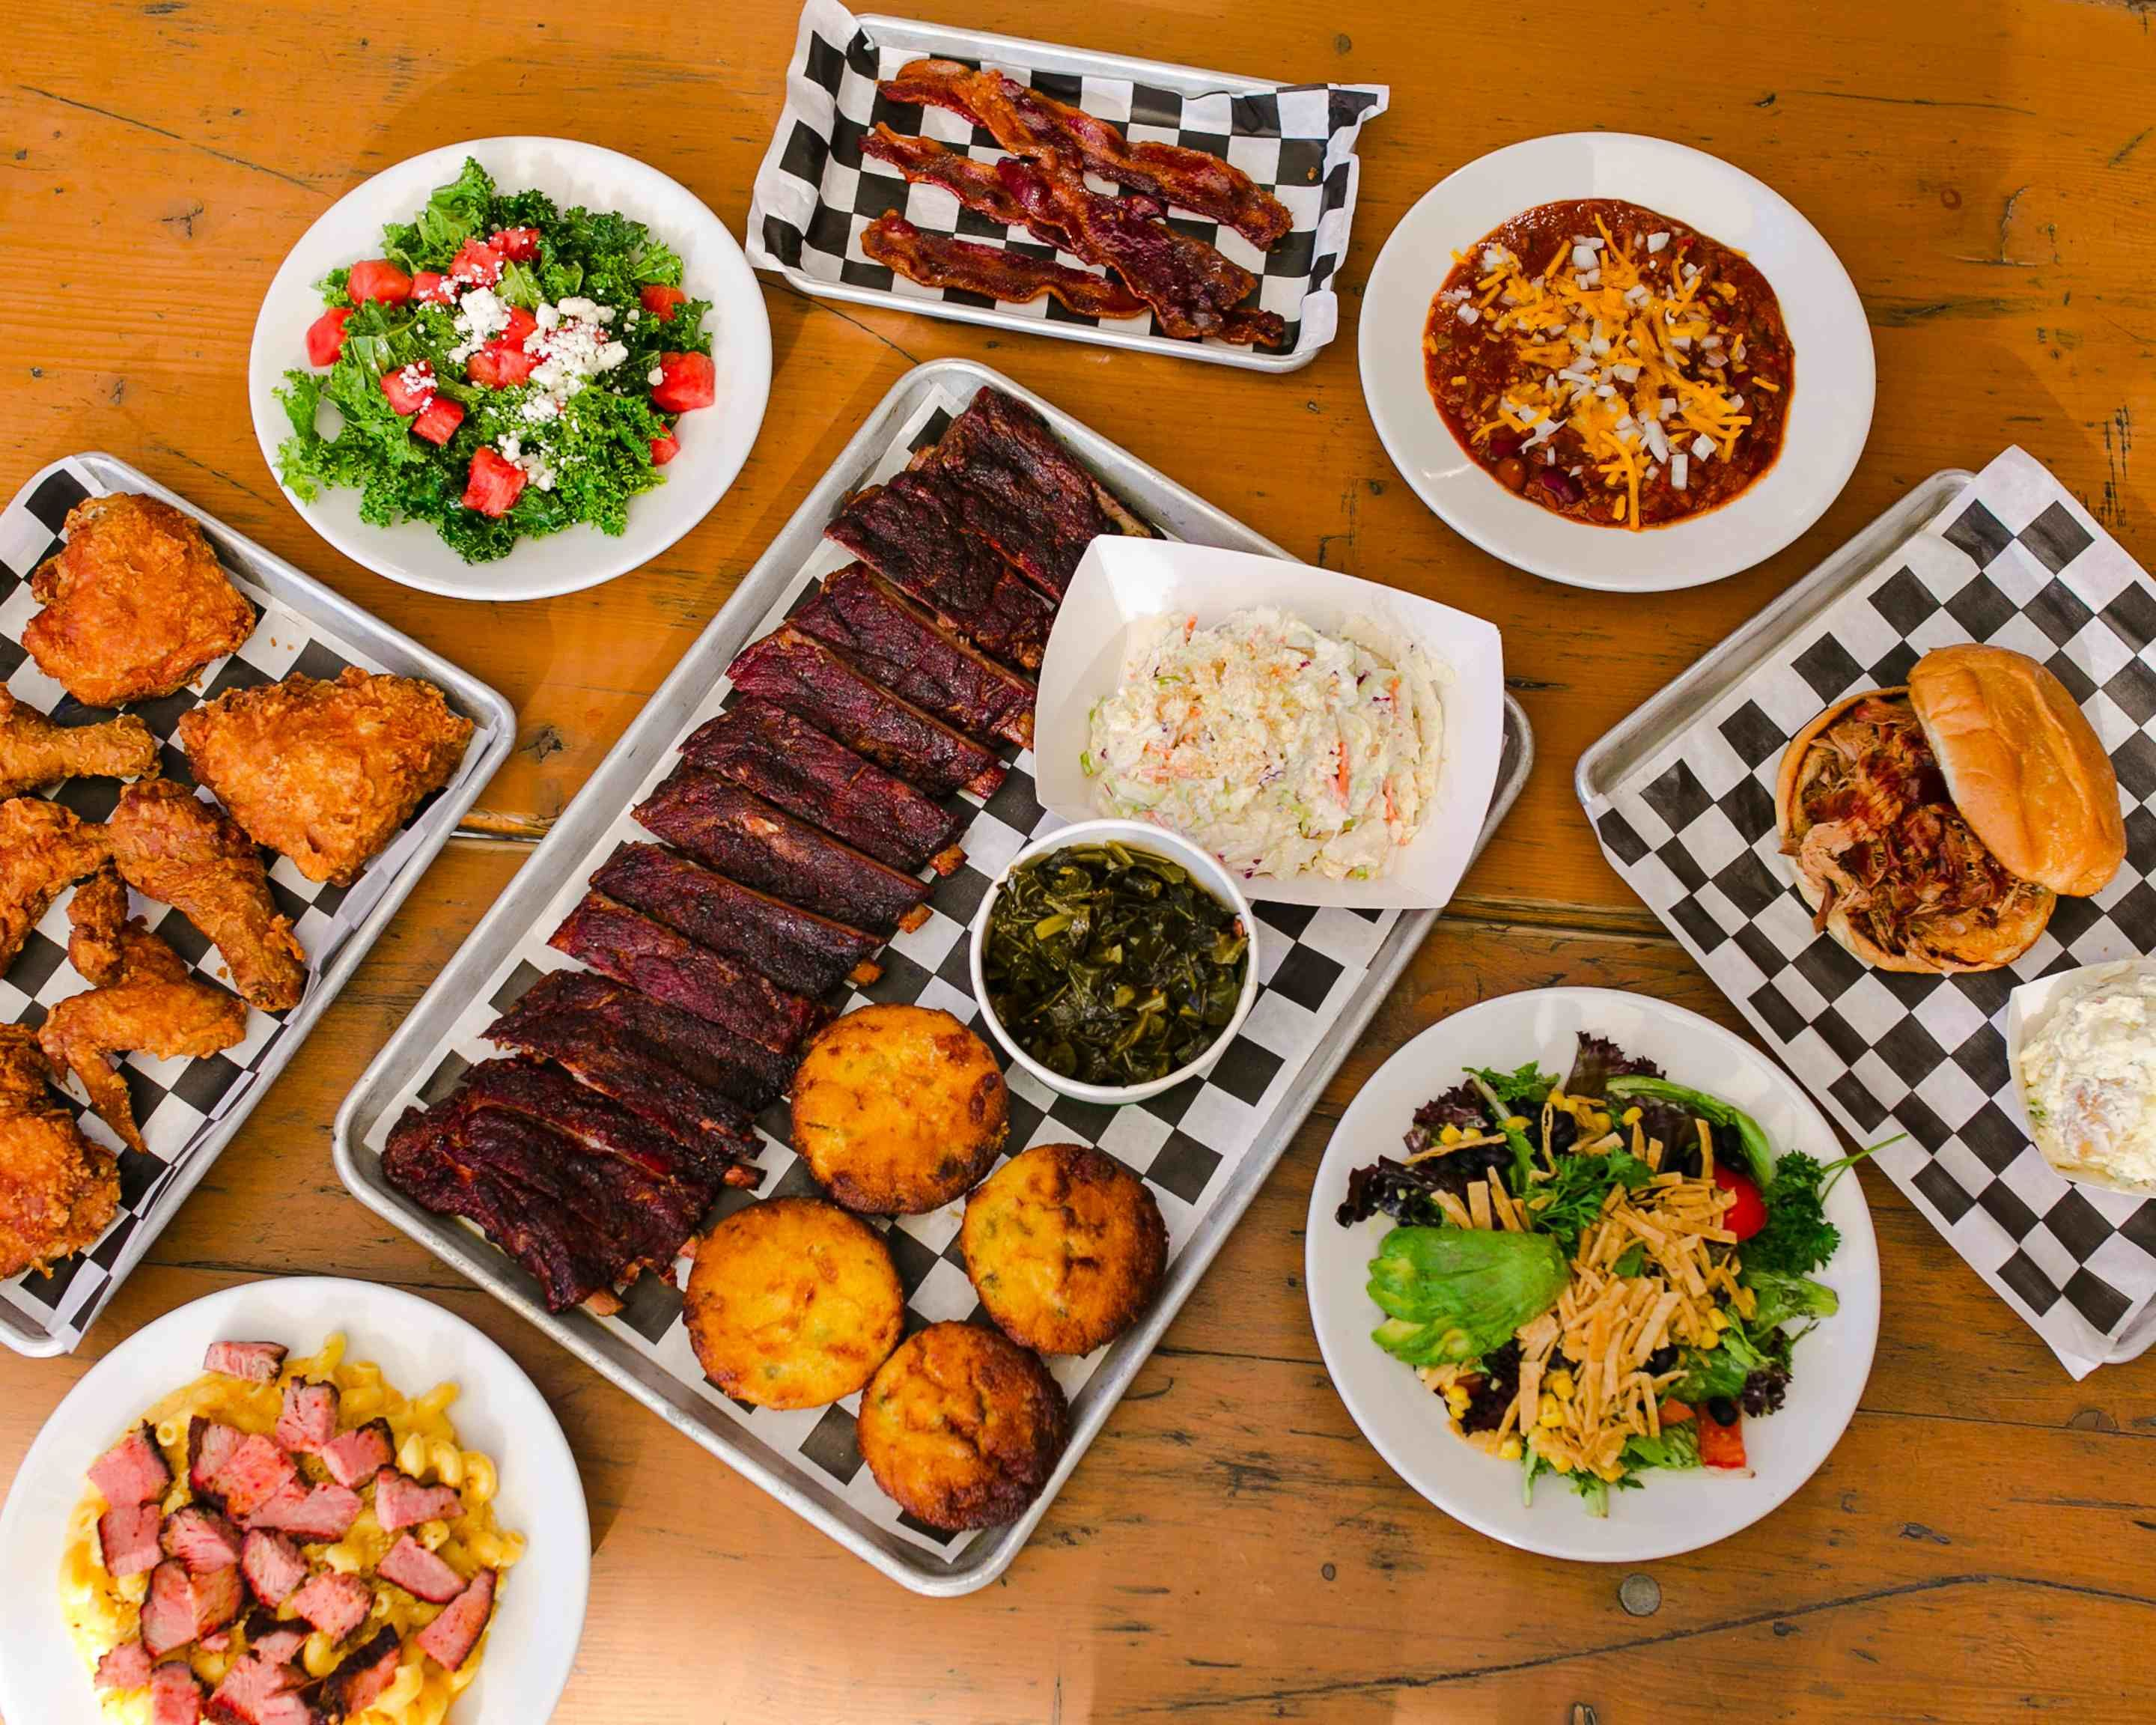 Order 3 Pigs BBQ Delivery Online | San Francisco Bay Area ...